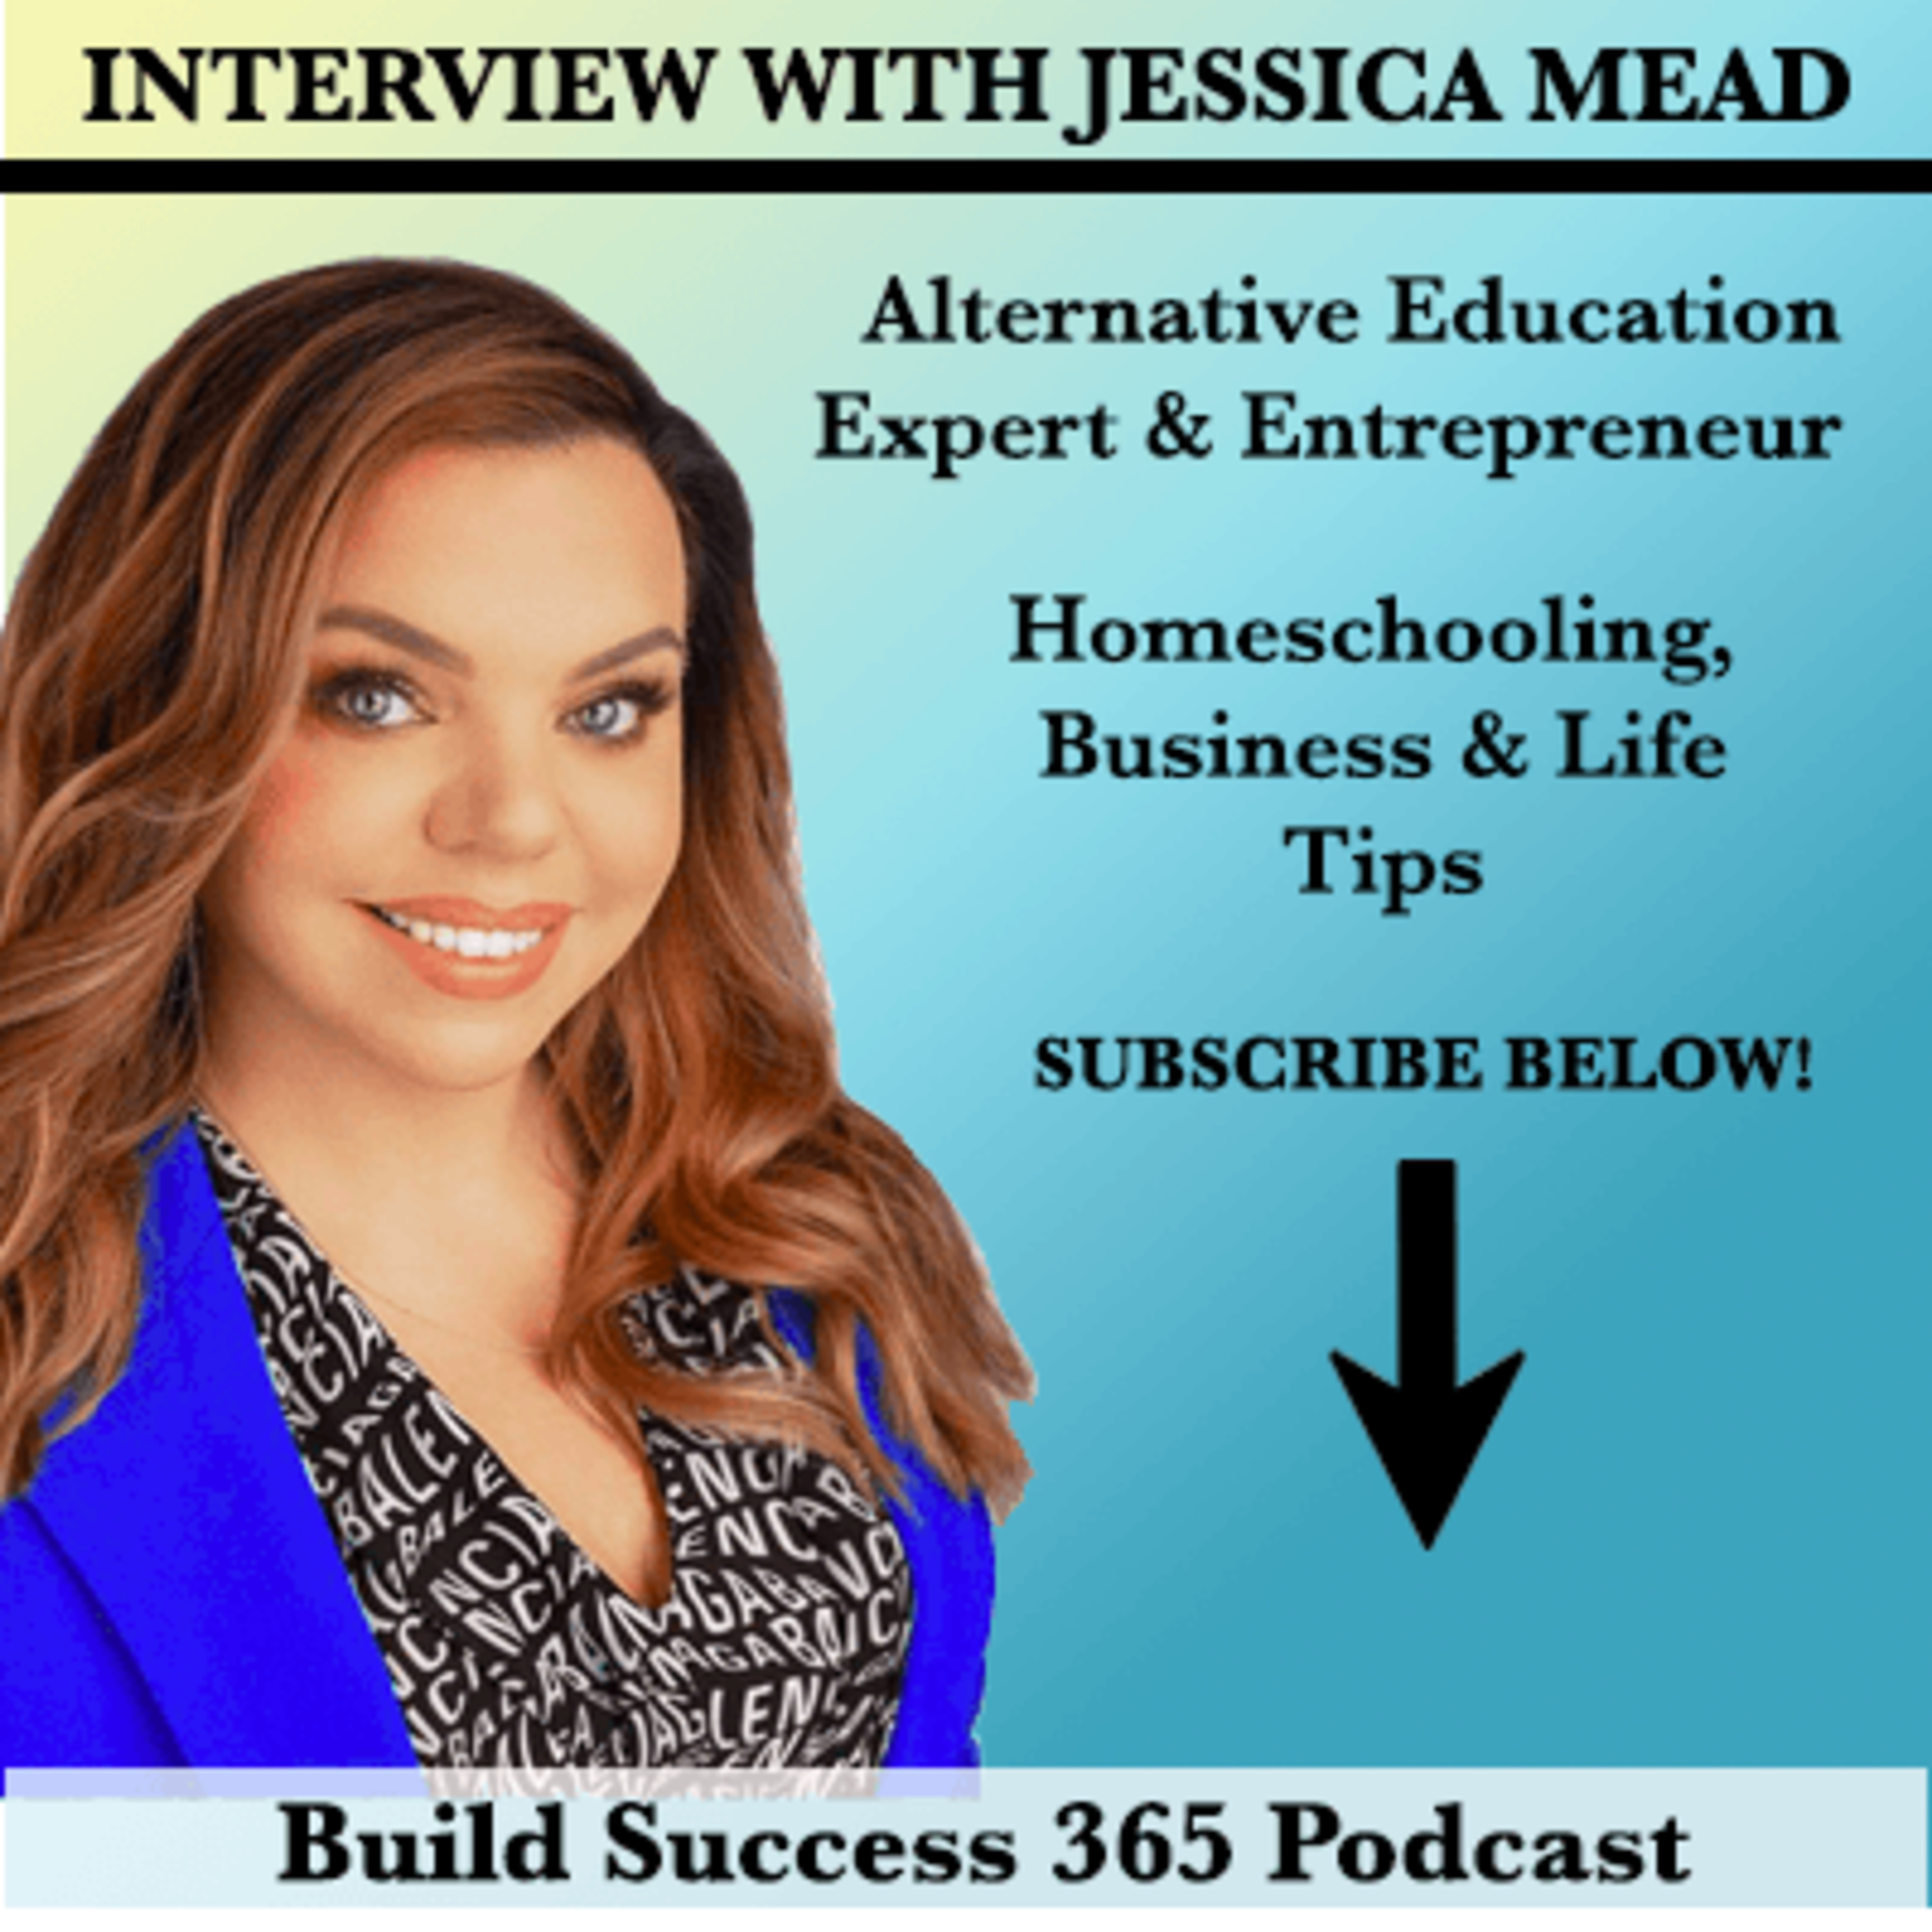 Interview With Jessica Mead- Alternative Education Expert & Entrepreneur